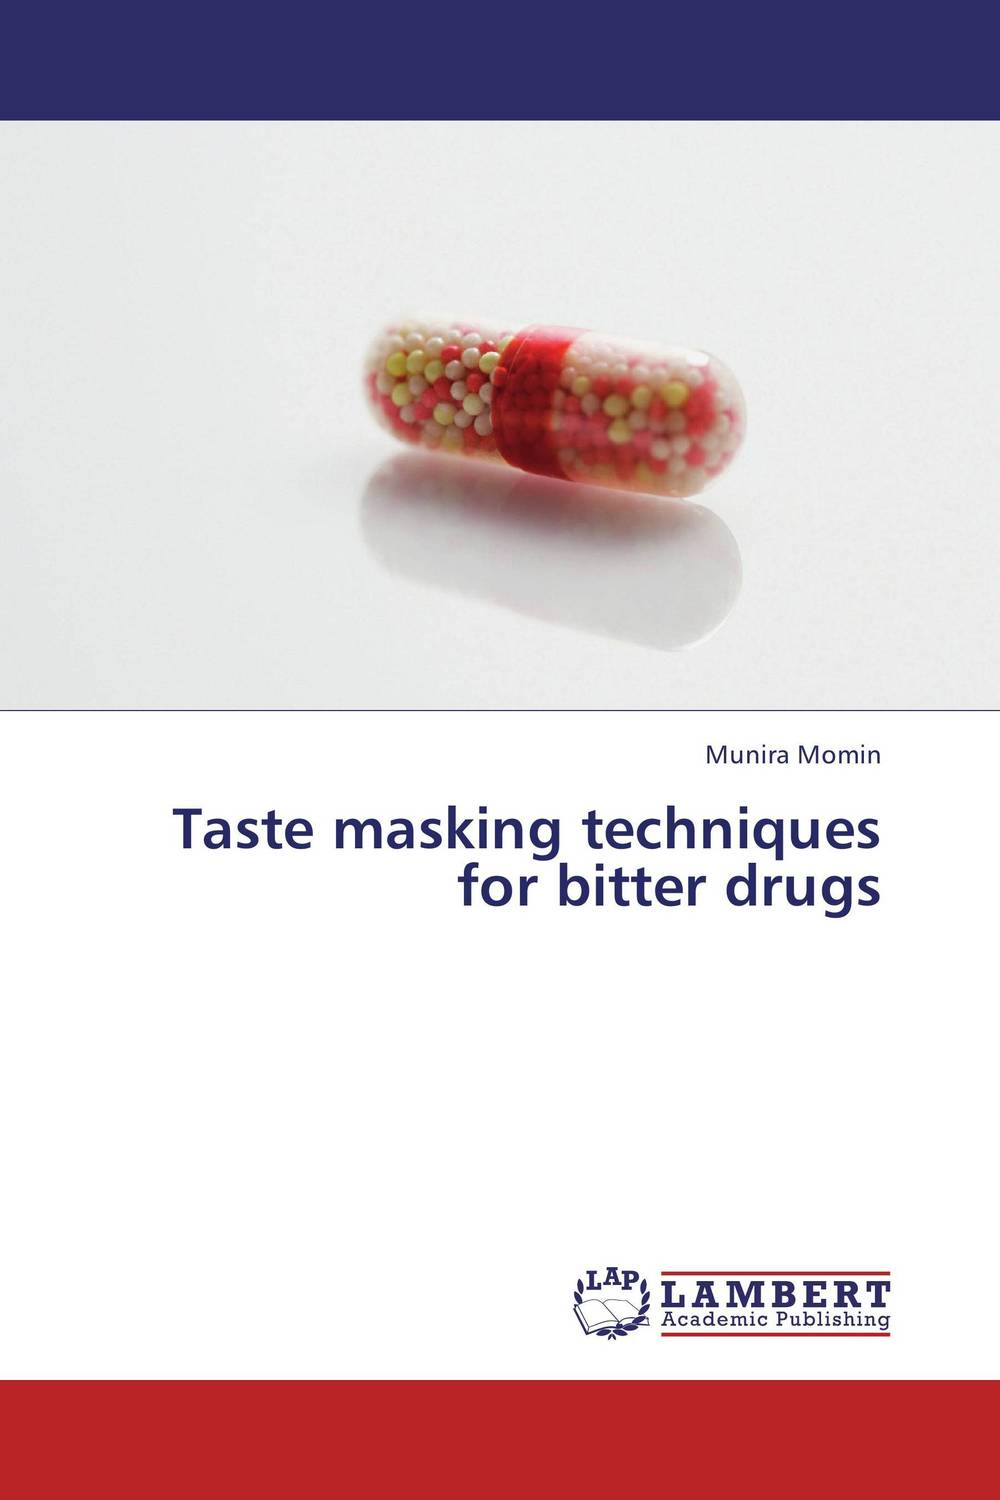 Taste masking techniques for bitter drugs pure nature bitter melon extract bitter melon p e powder charantin to the world